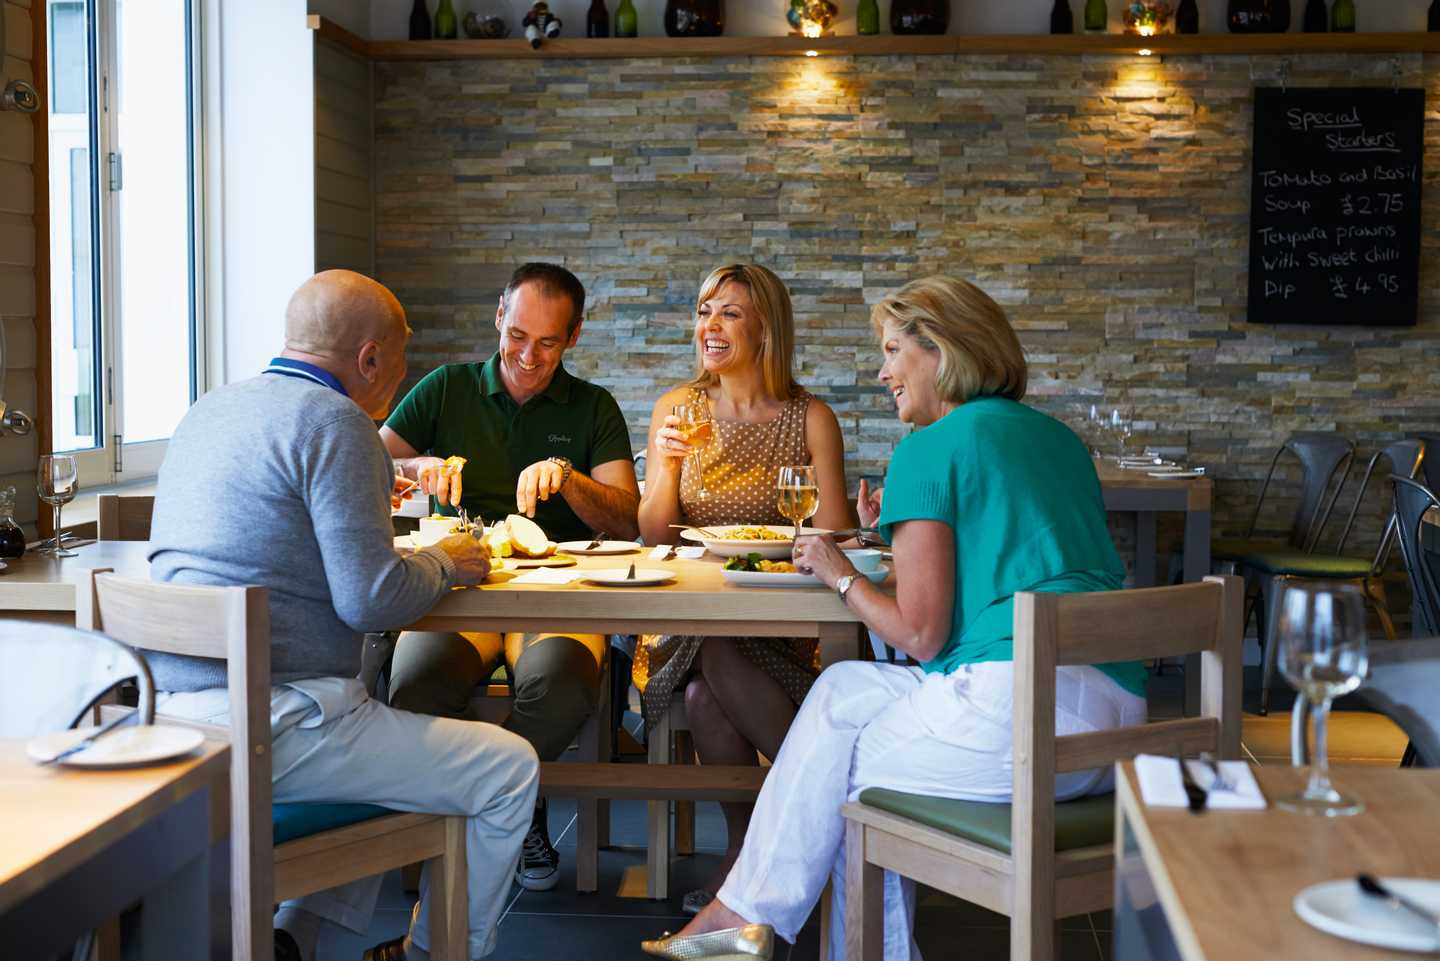 A family enjoying a meal in the Harbourside restaurant